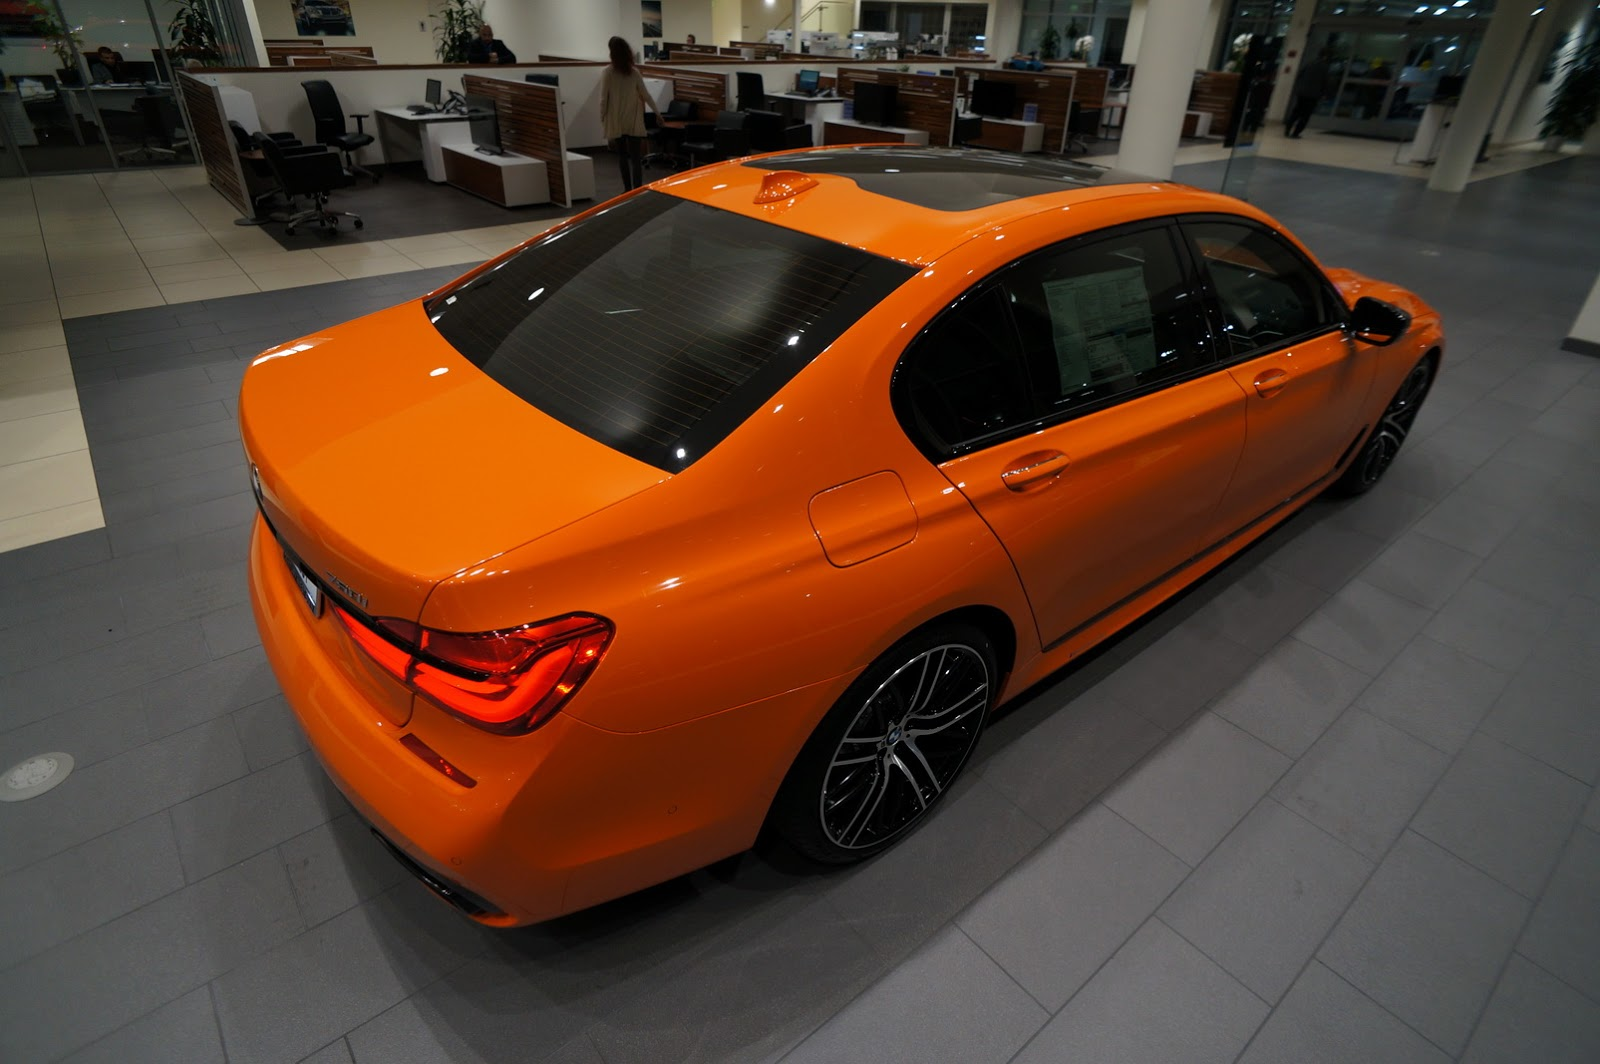 BMW_750i_Fire_Orange_39